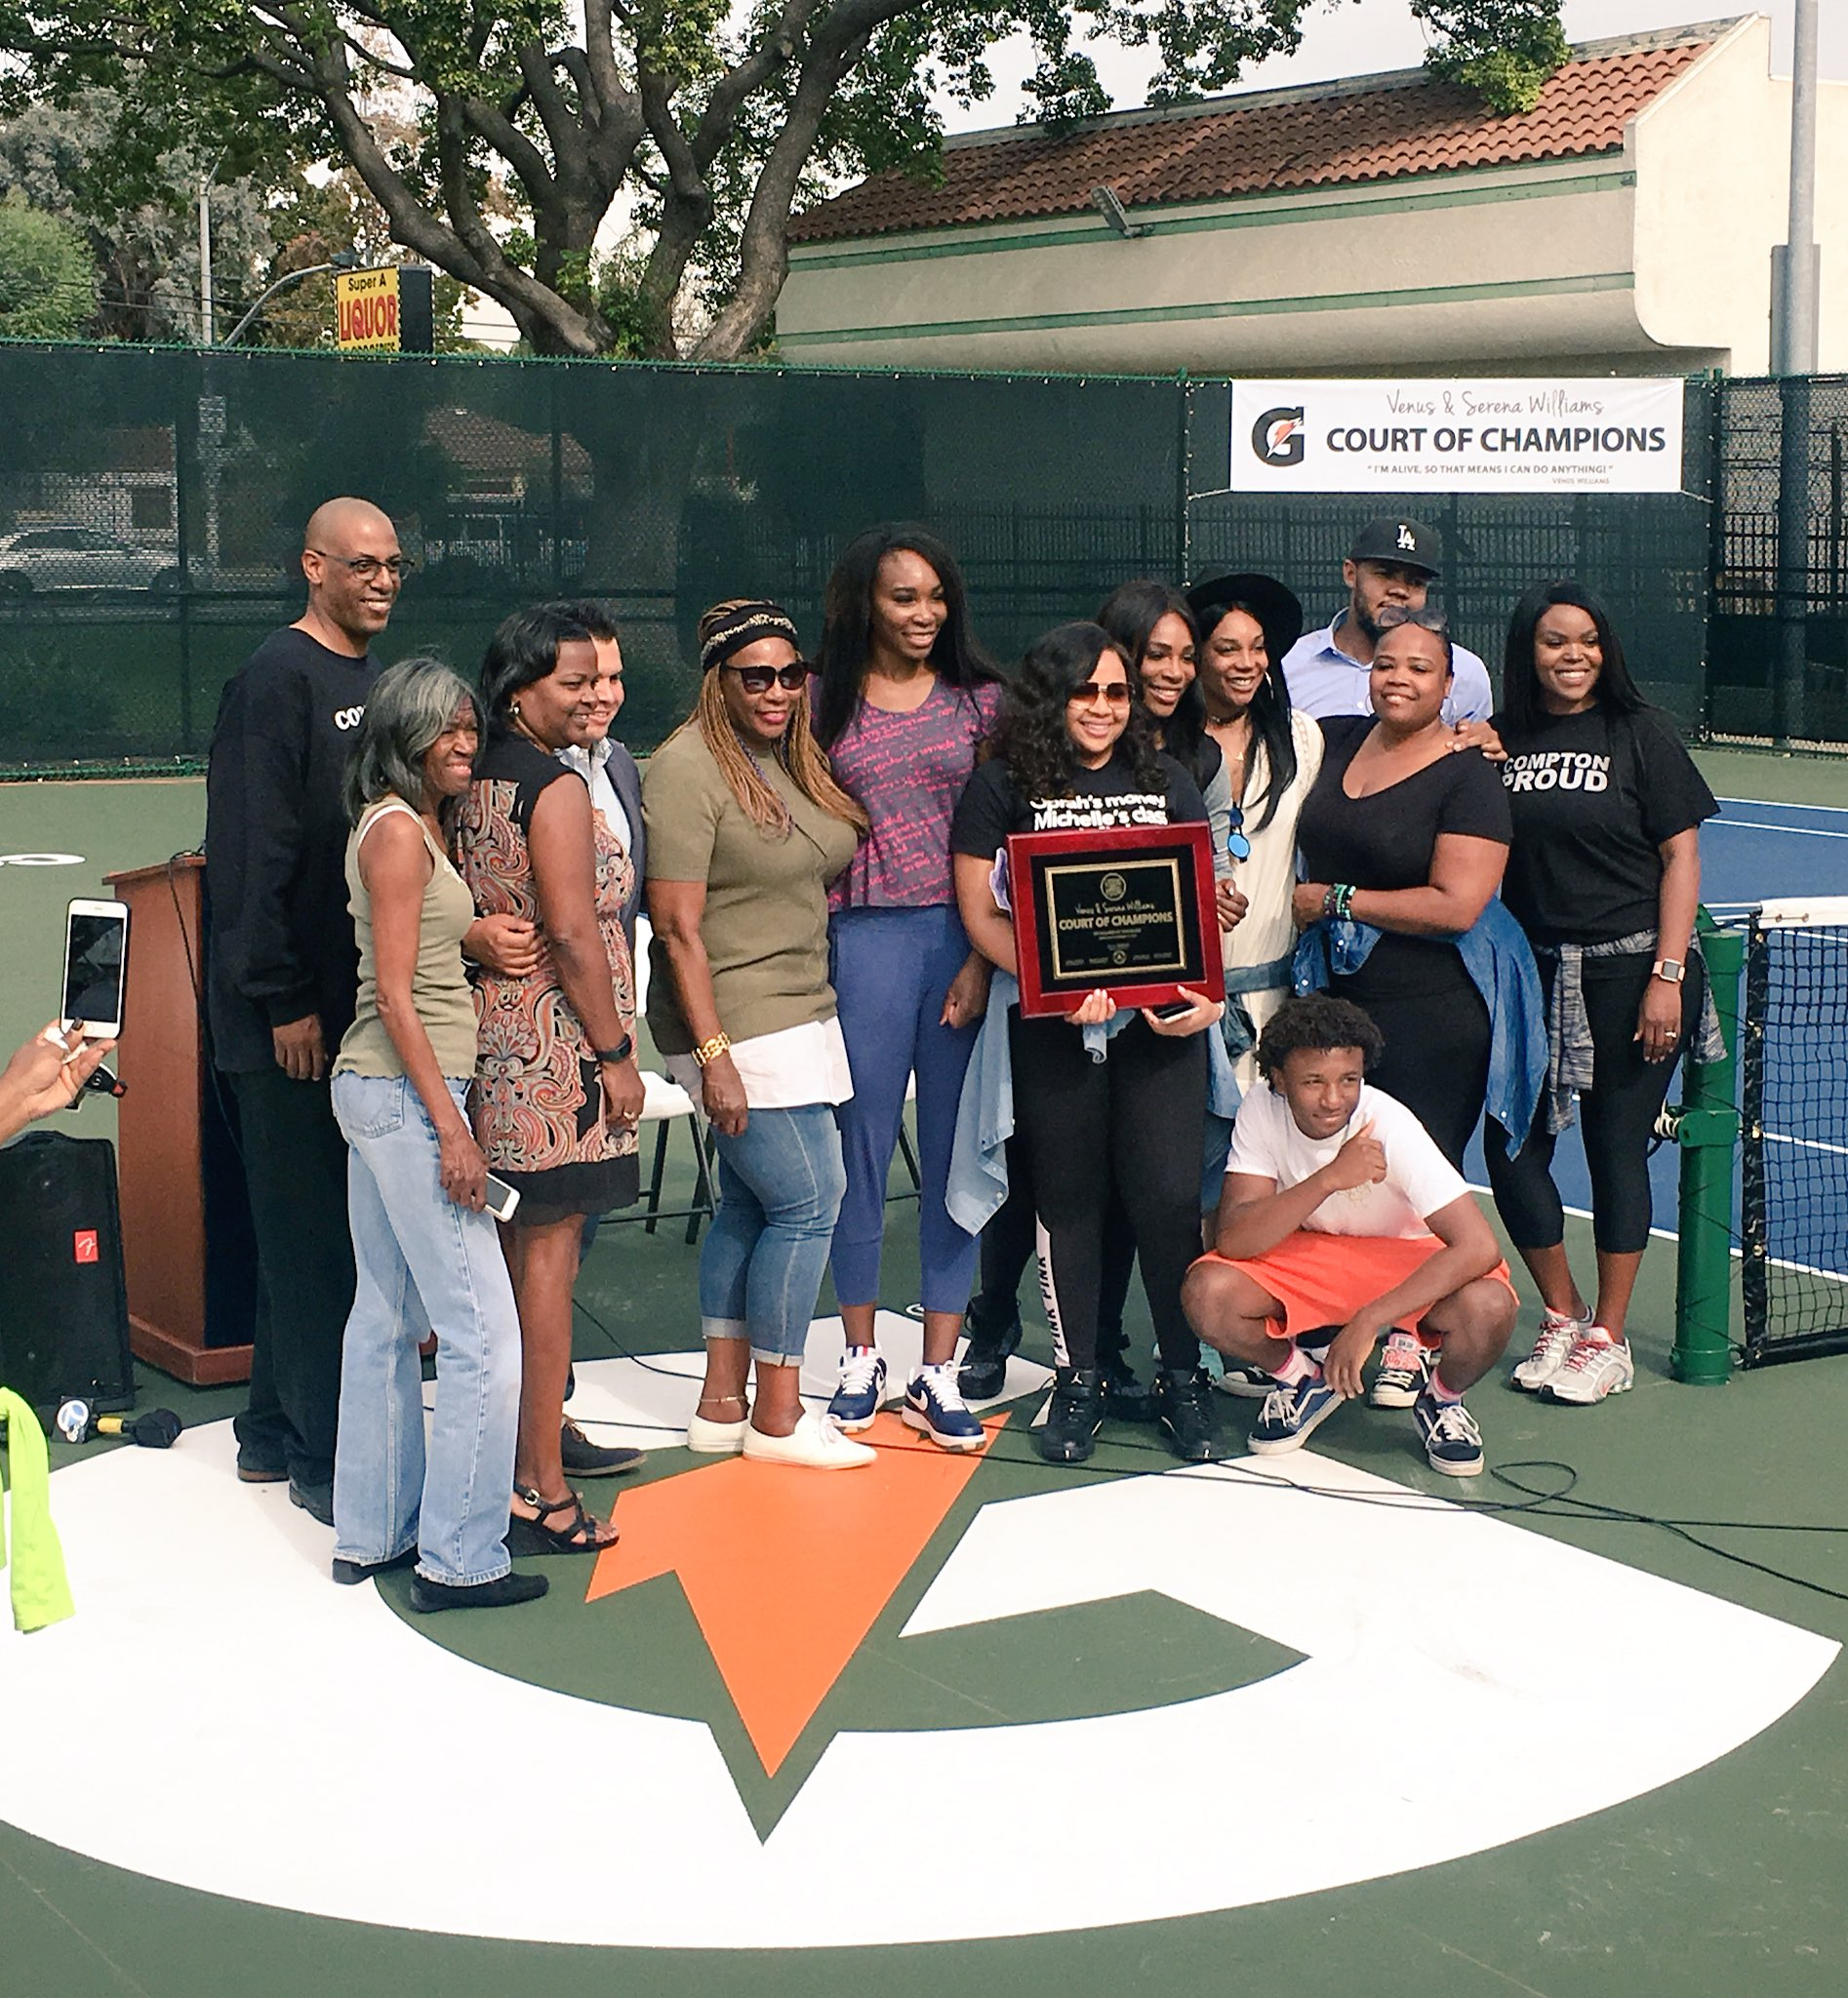 Grateful for @Gatorade 's support of the Williams Sisters Fund and our #HealthCompton Day https://t.co/XtPulpaI0y